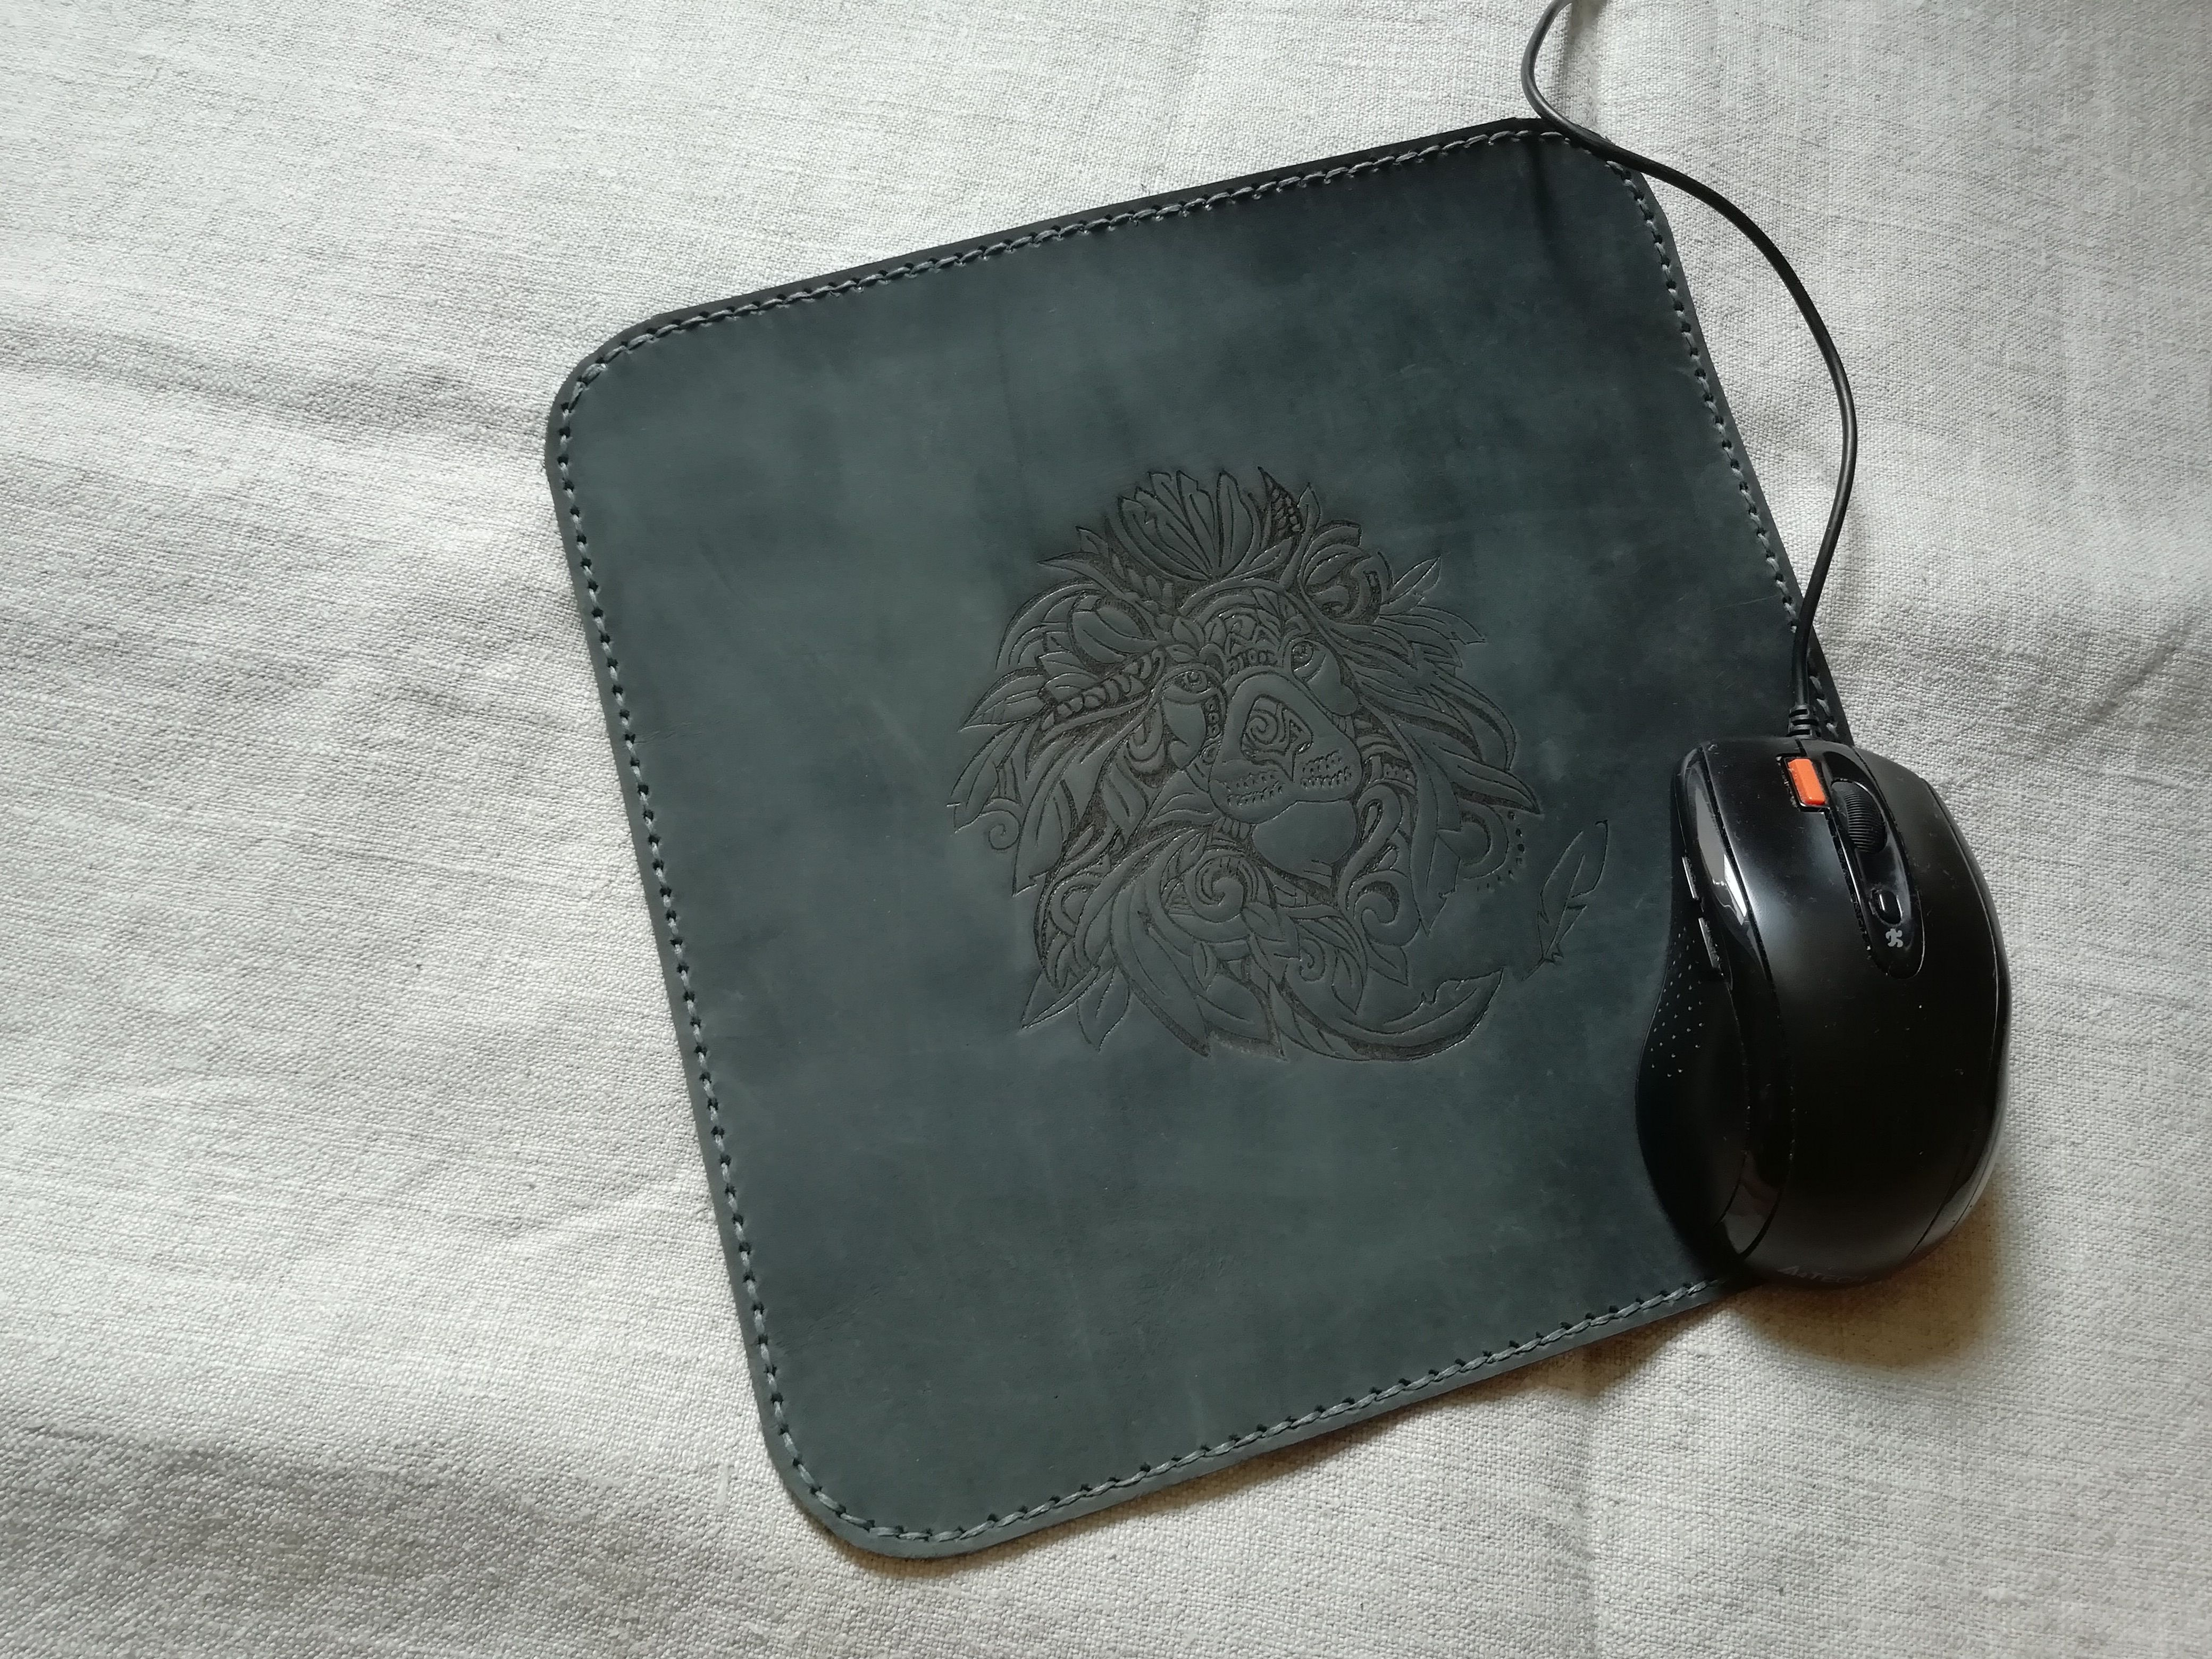 Mouse Pad Is An Original Gift And Just A Convenient Practical